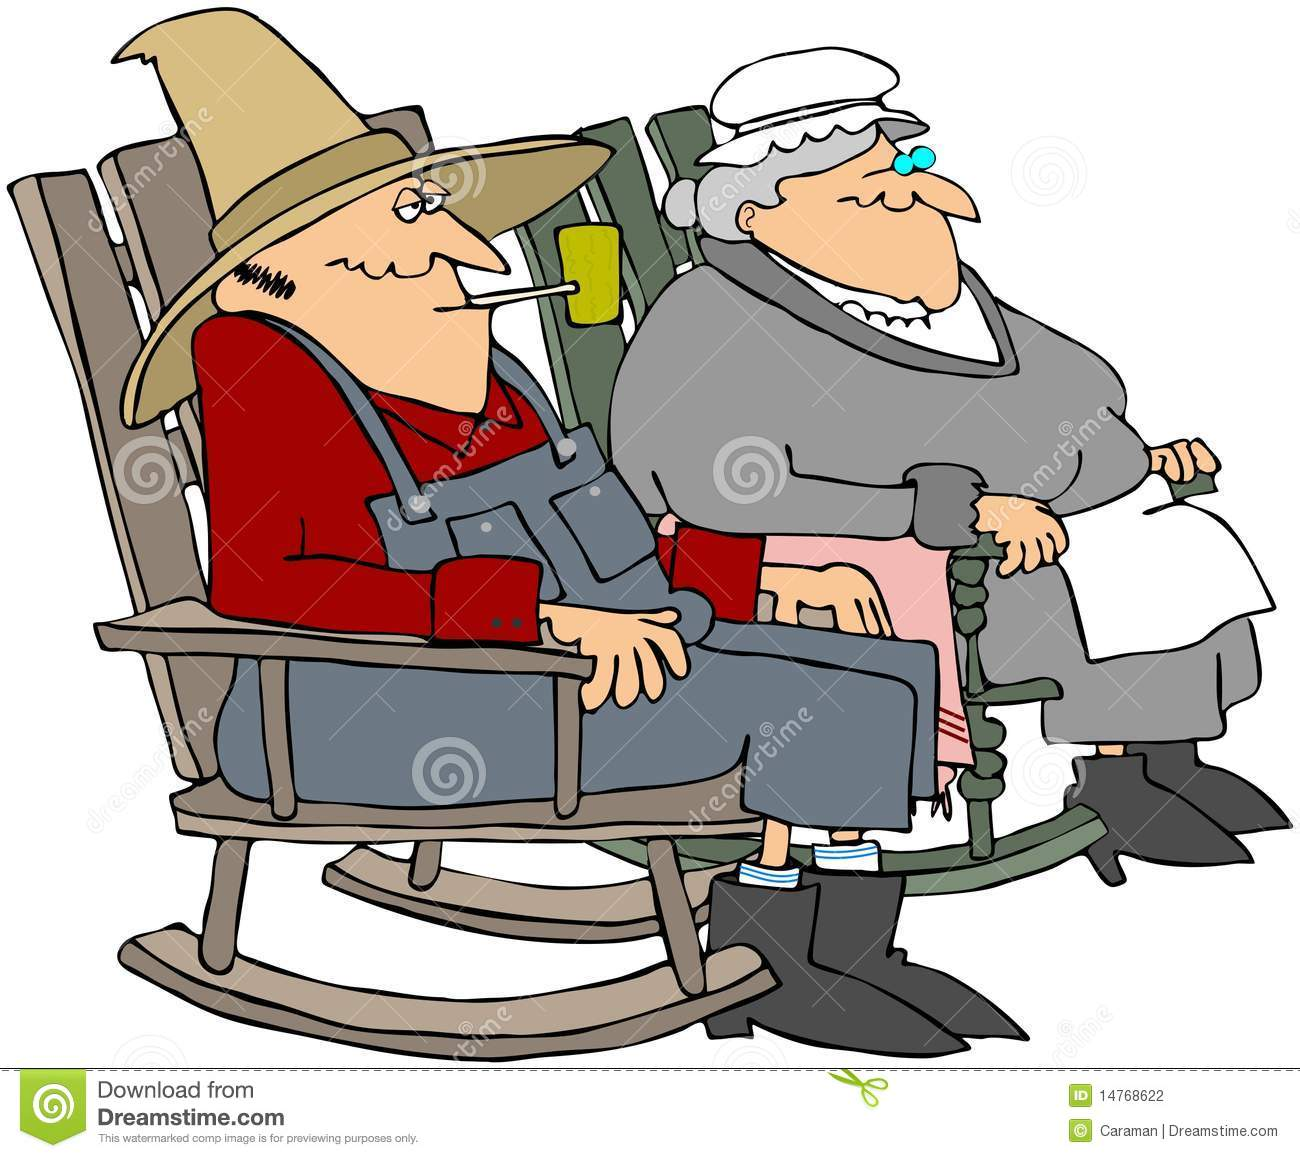 folding chair gif guy cover rentals lawrenceville ga old folks in rocking chairs stock photography image